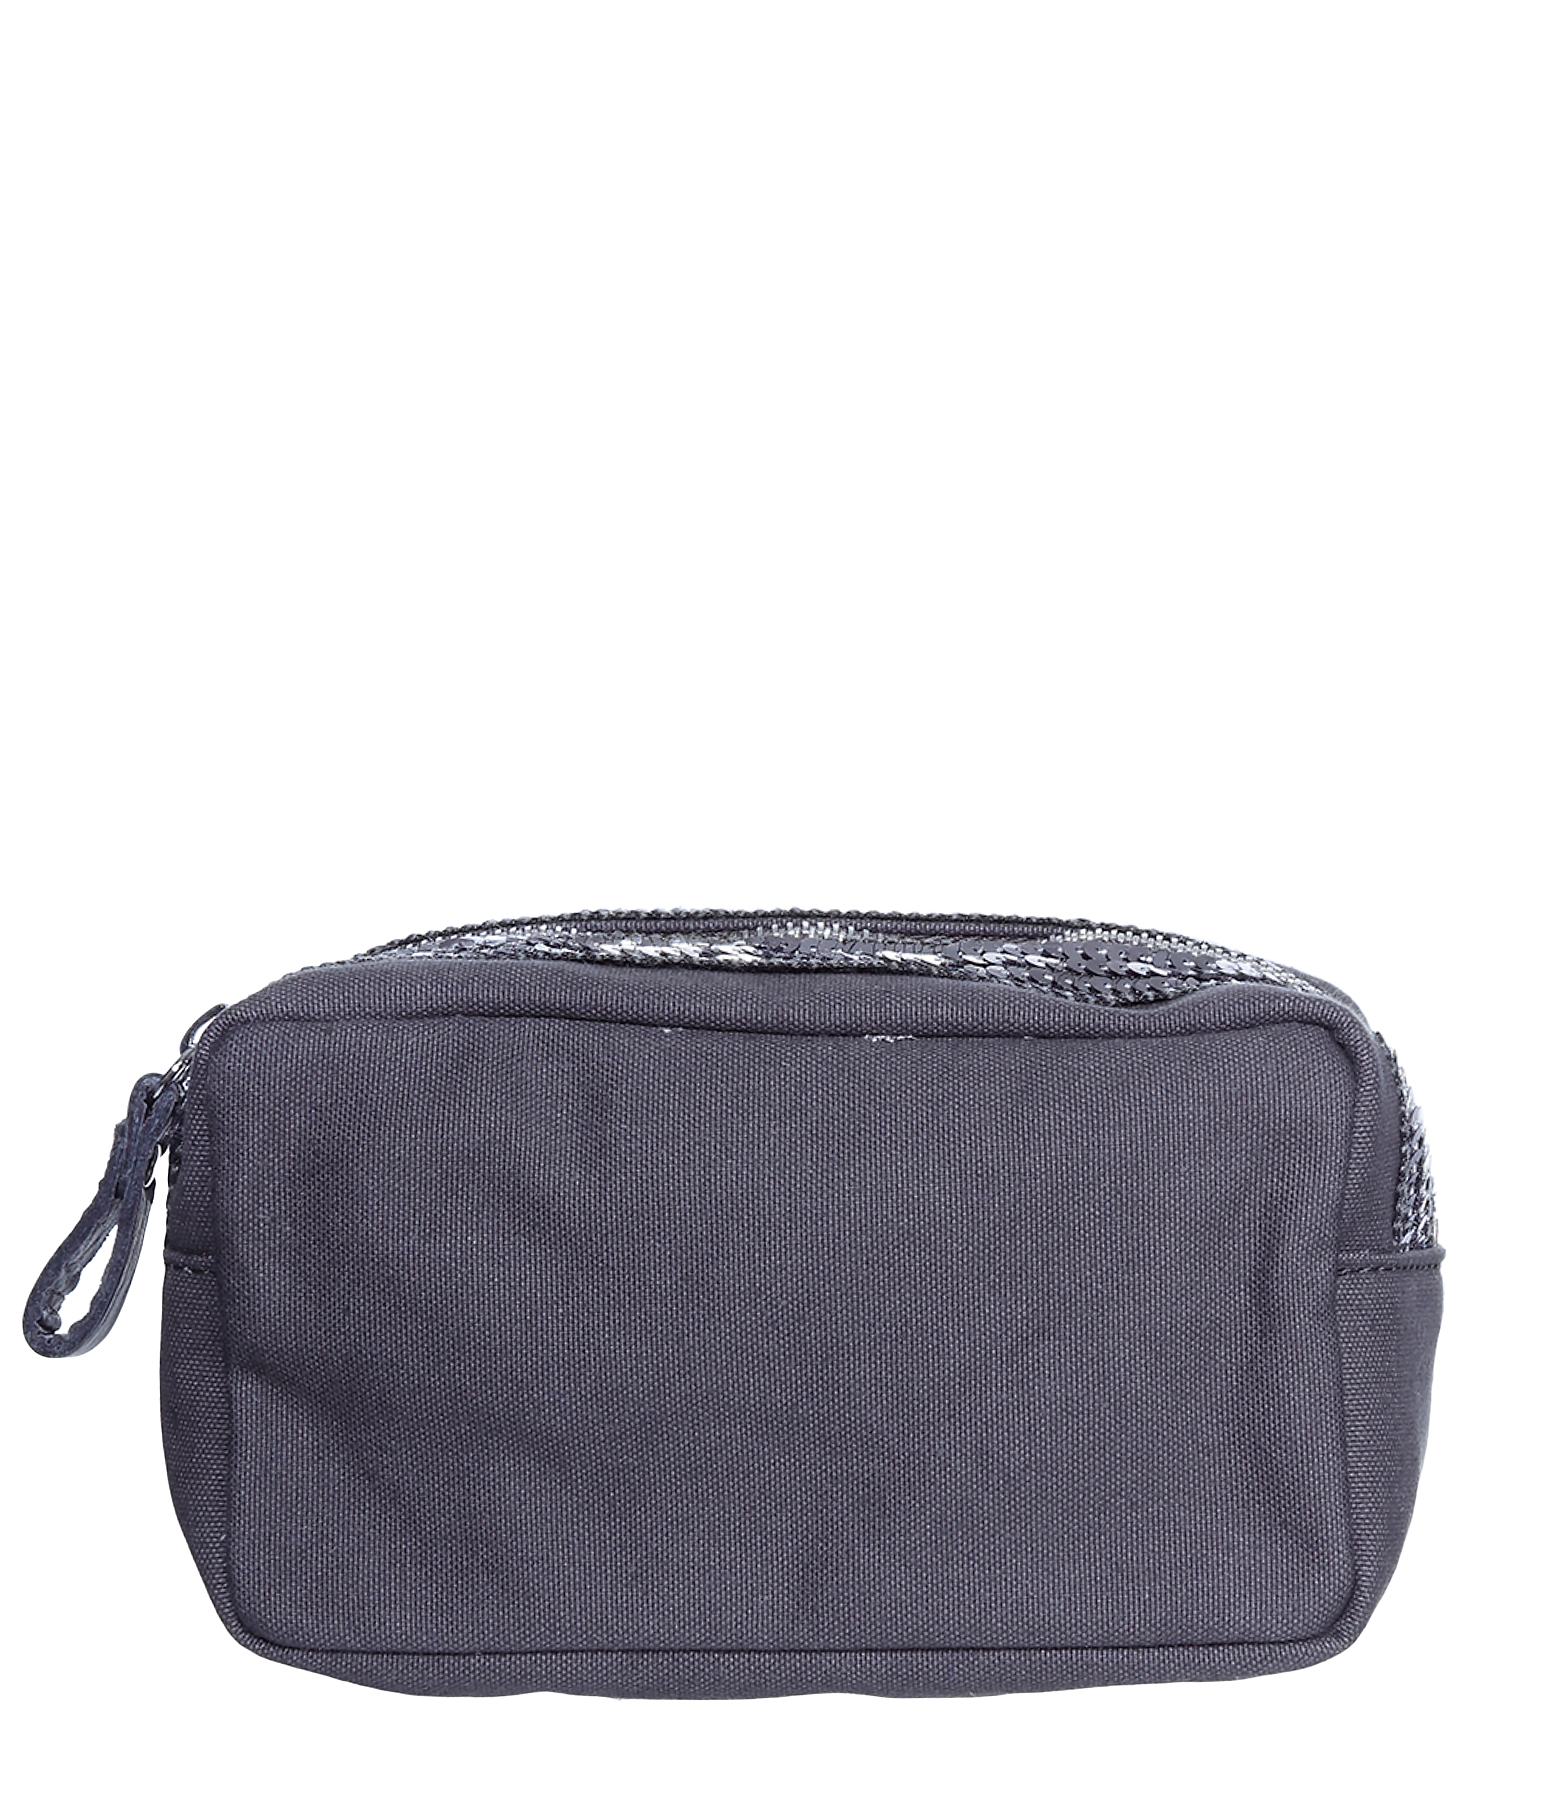 Trousse Maquillage Toile Anthracite